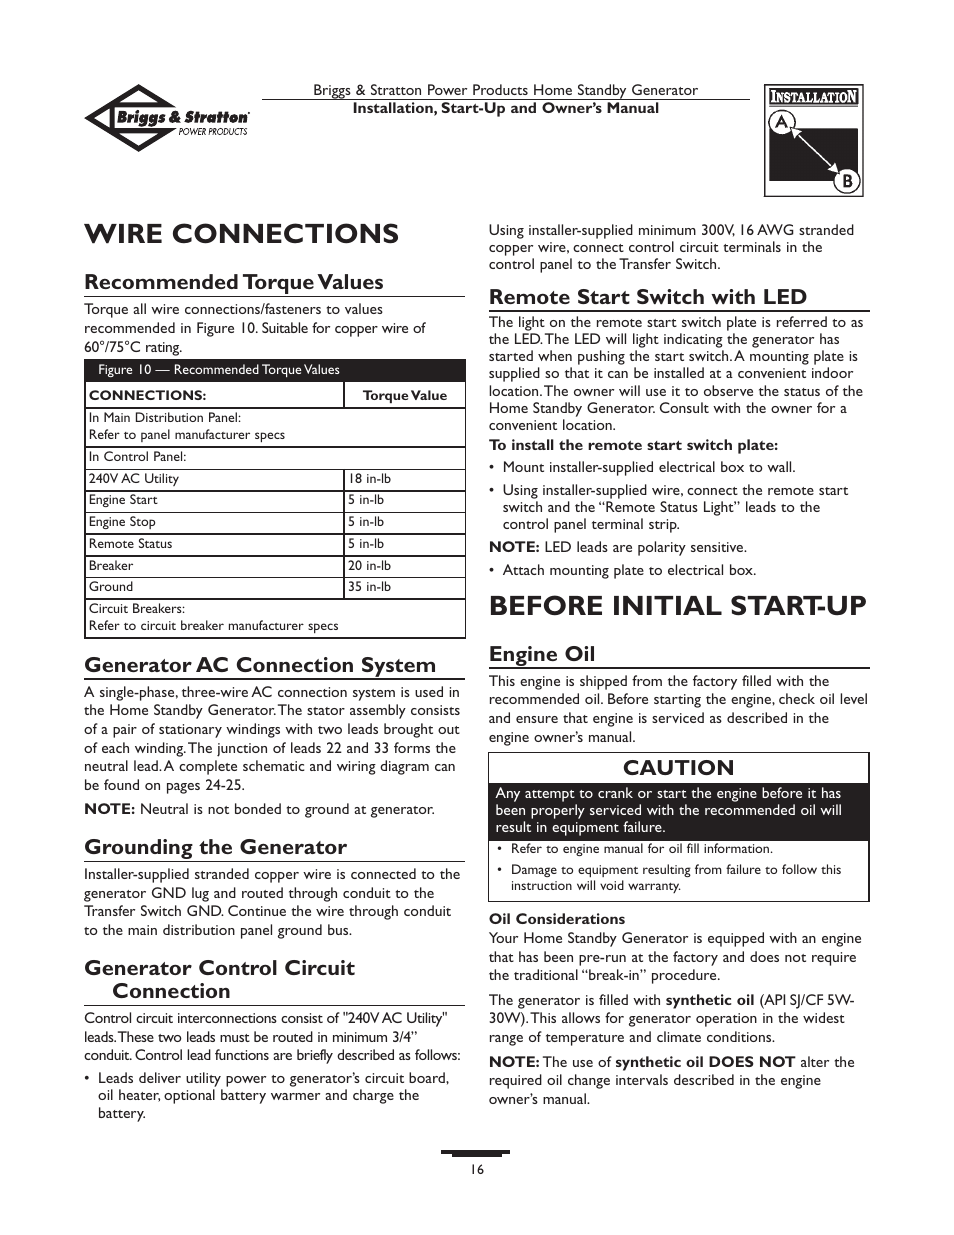 hight resolution of wire connections before initial start up recommended torque values briggs stratton 01975 0 user manual page 16 80